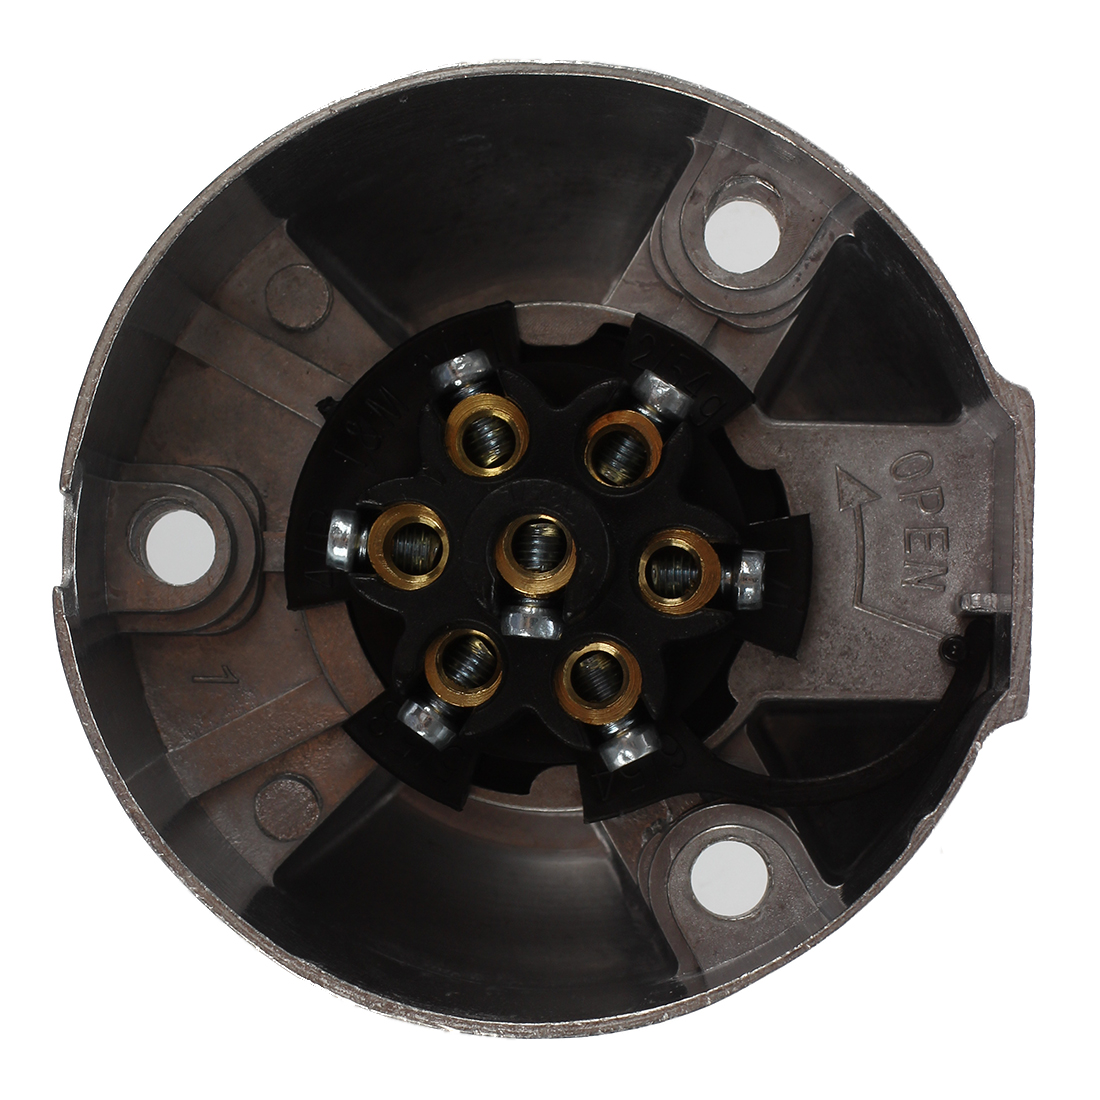 7 Pin Trailer Socket Heavy Duty Round Pole Wiring 12v Towbar Towing Caravan Truck Vehicle End N Type In Equalizers From Automobiles